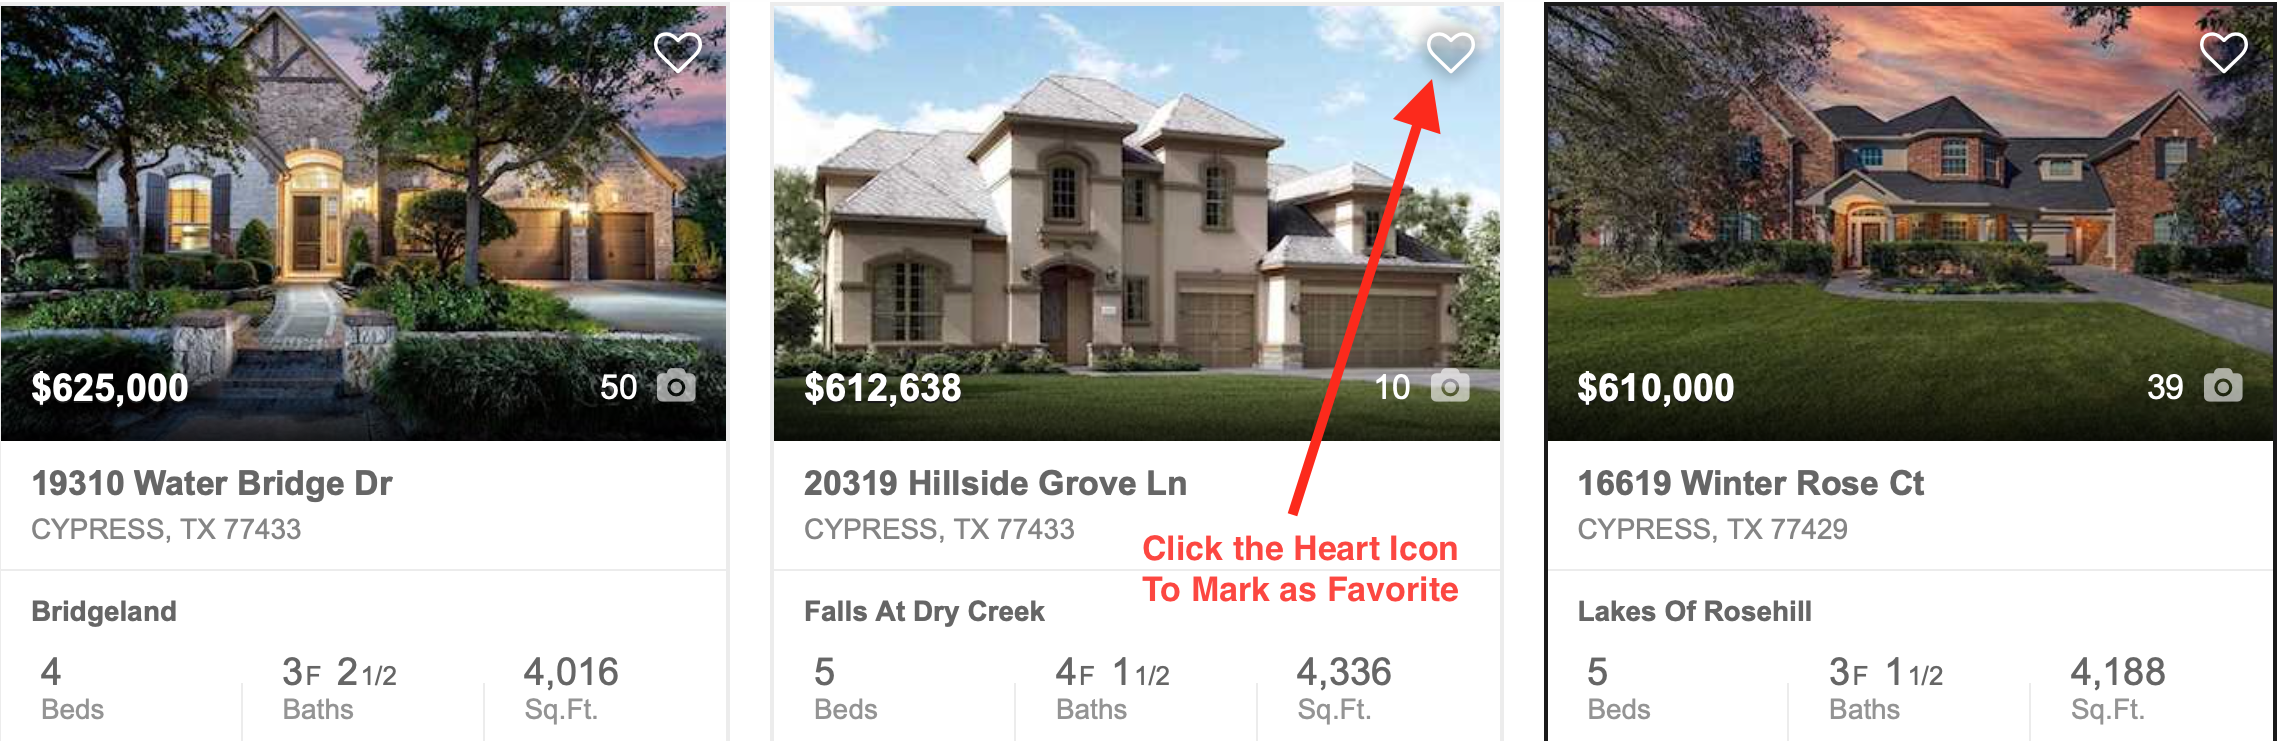 Click on the Heart Icon to mark homes as Favorites